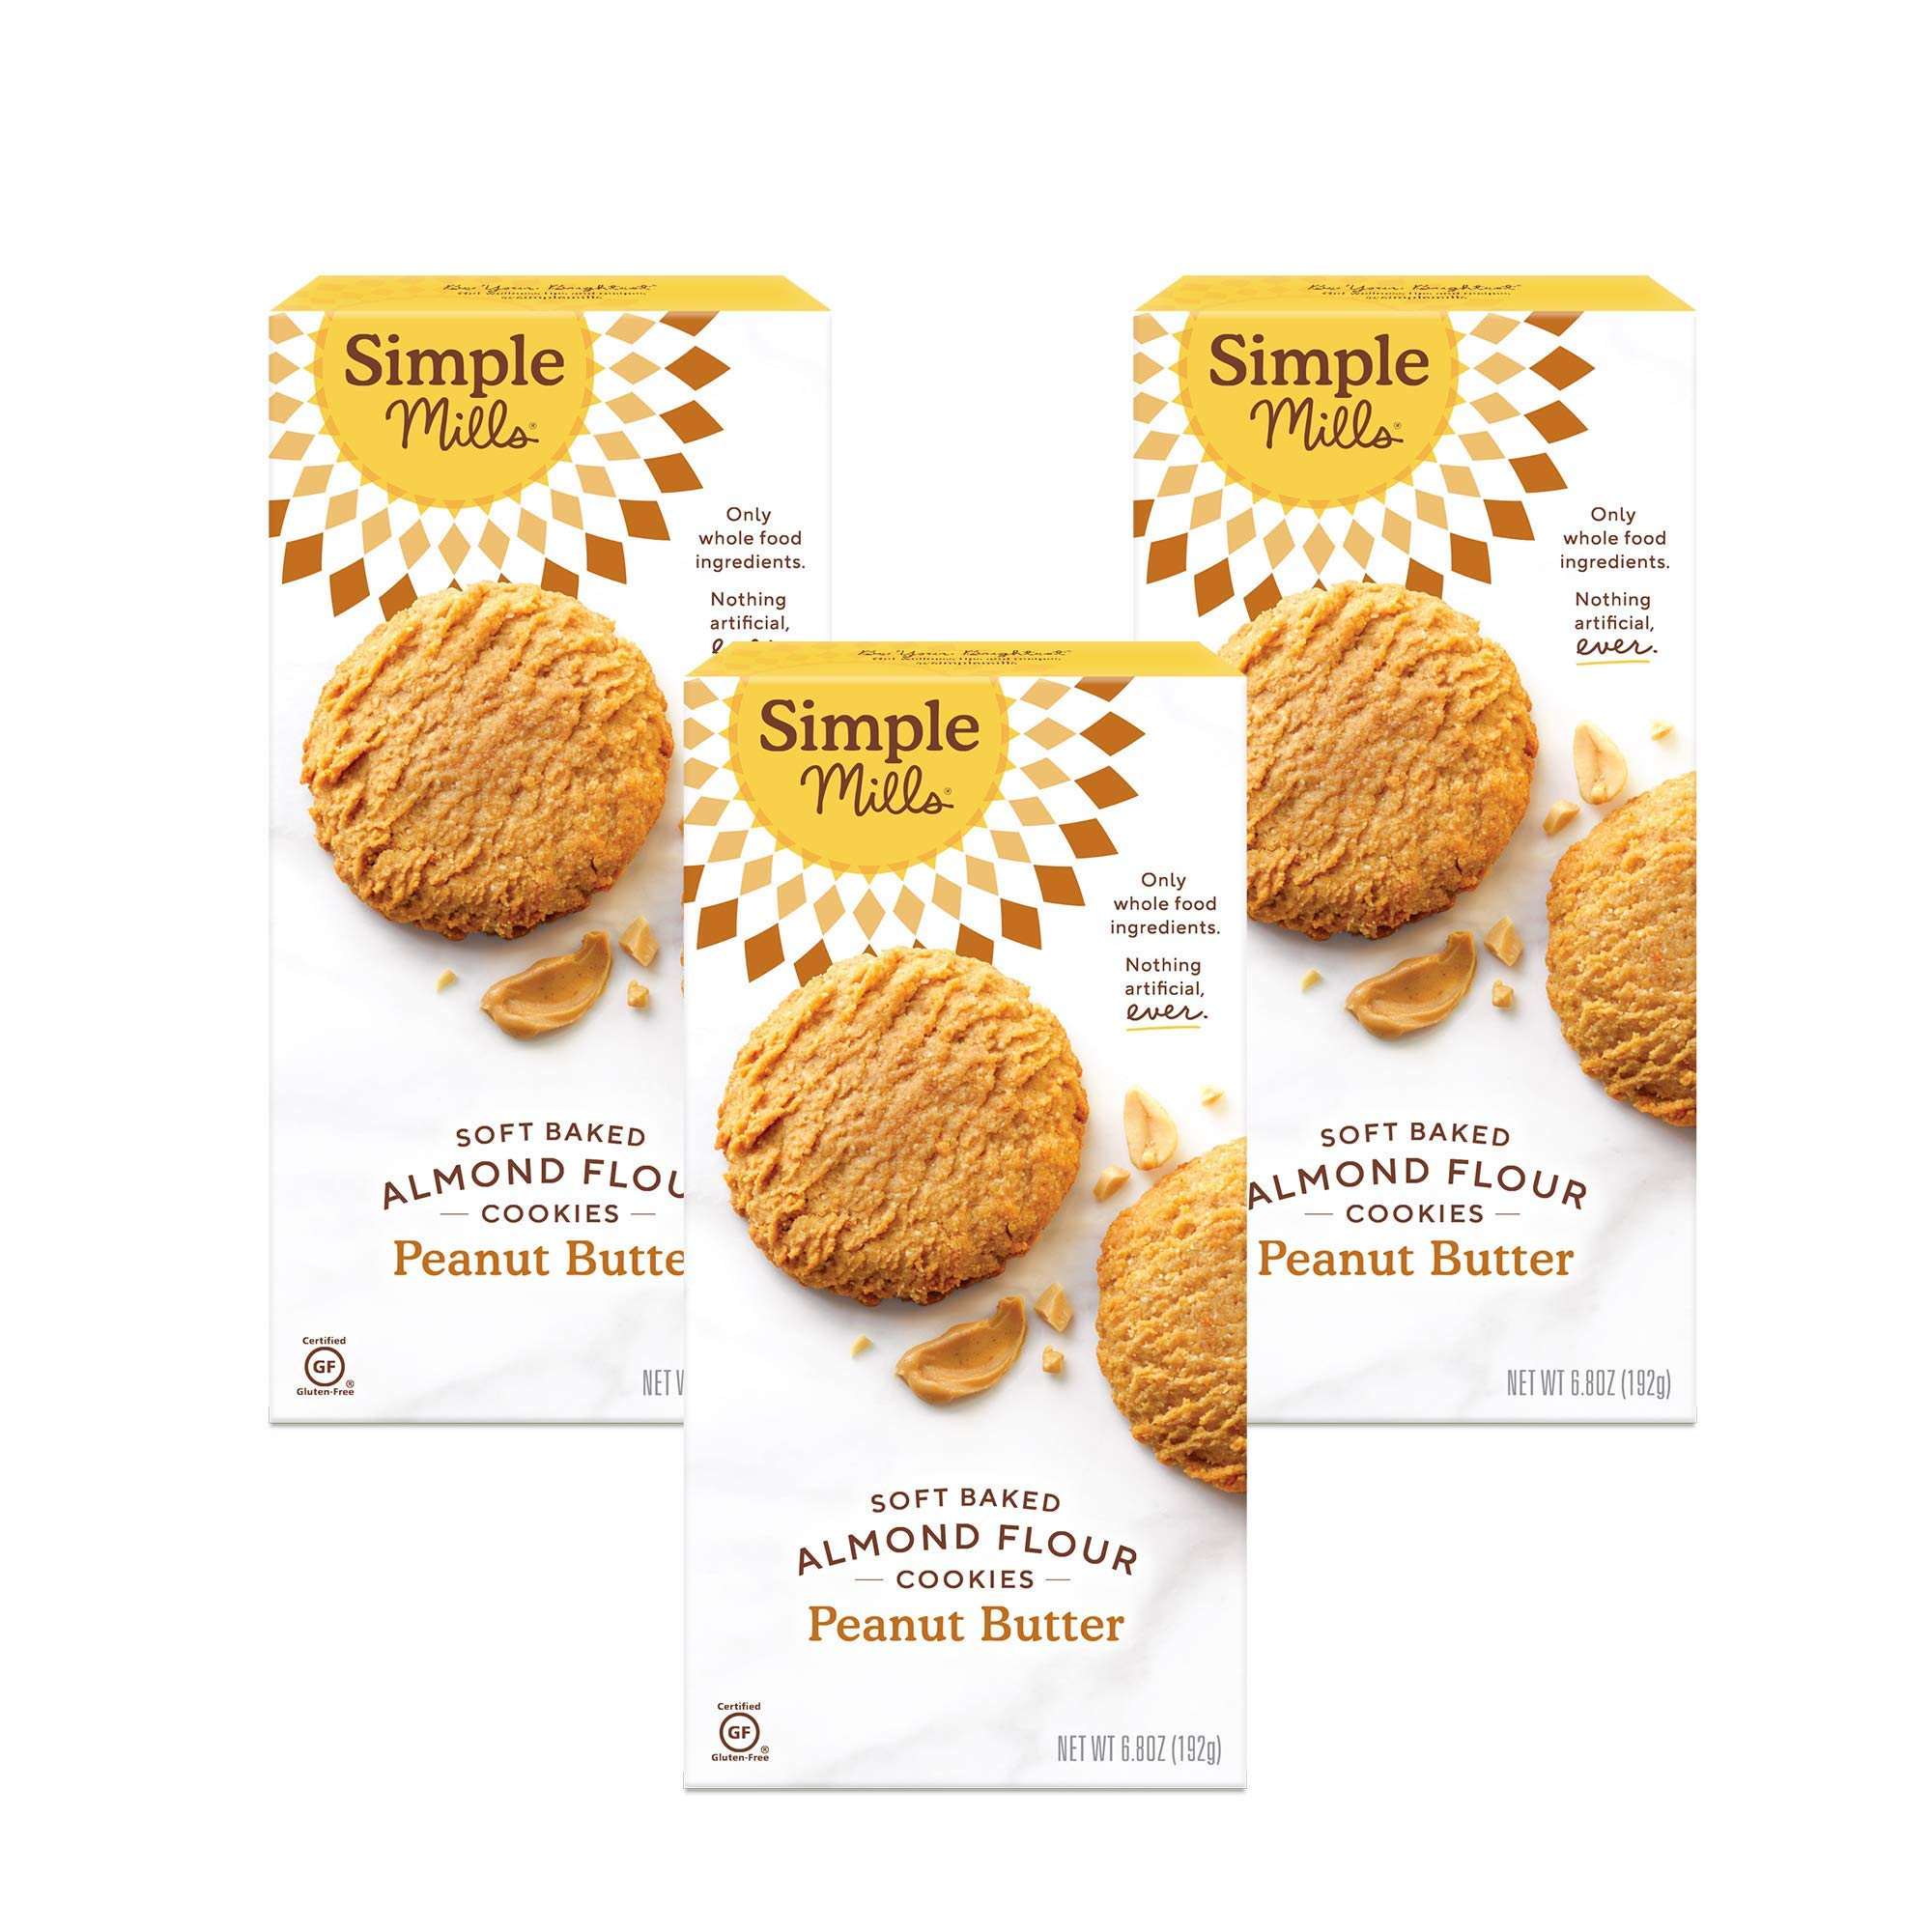 Simple Mills Almond Flour Peanut Butter Cookies, Gluten Free and Delicious Soft Baked Cookies, Organic Coconut Oil, Good for Snacks, Made with whole foods, 3 Count (Packaging May Vary)